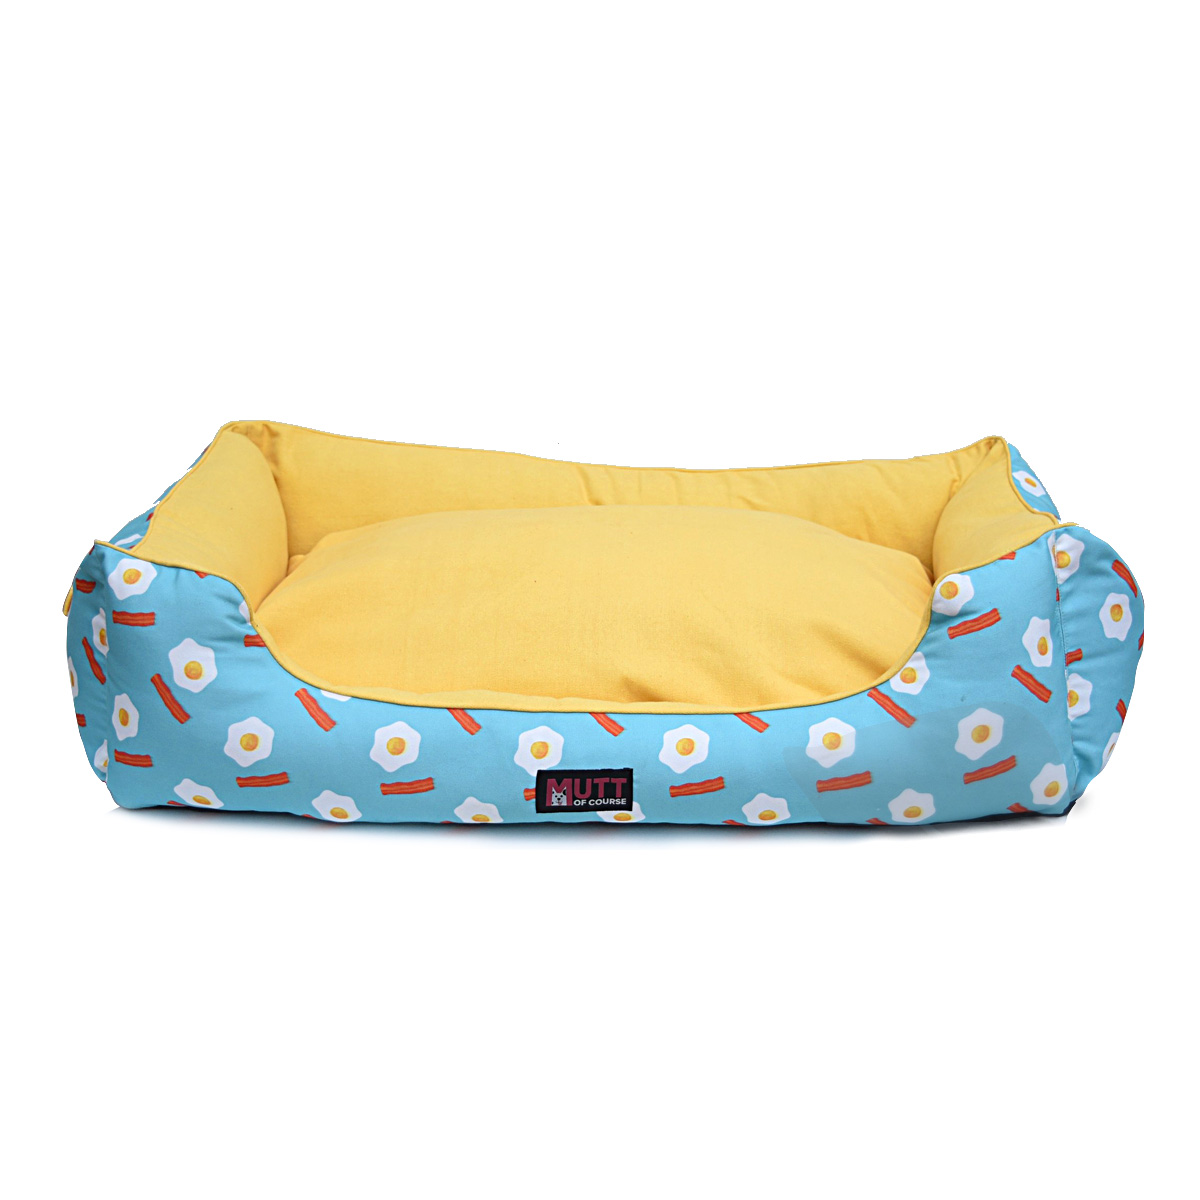 Mutt Of Course Lounger Bed For Dogs - Eggs N Bacon - Small